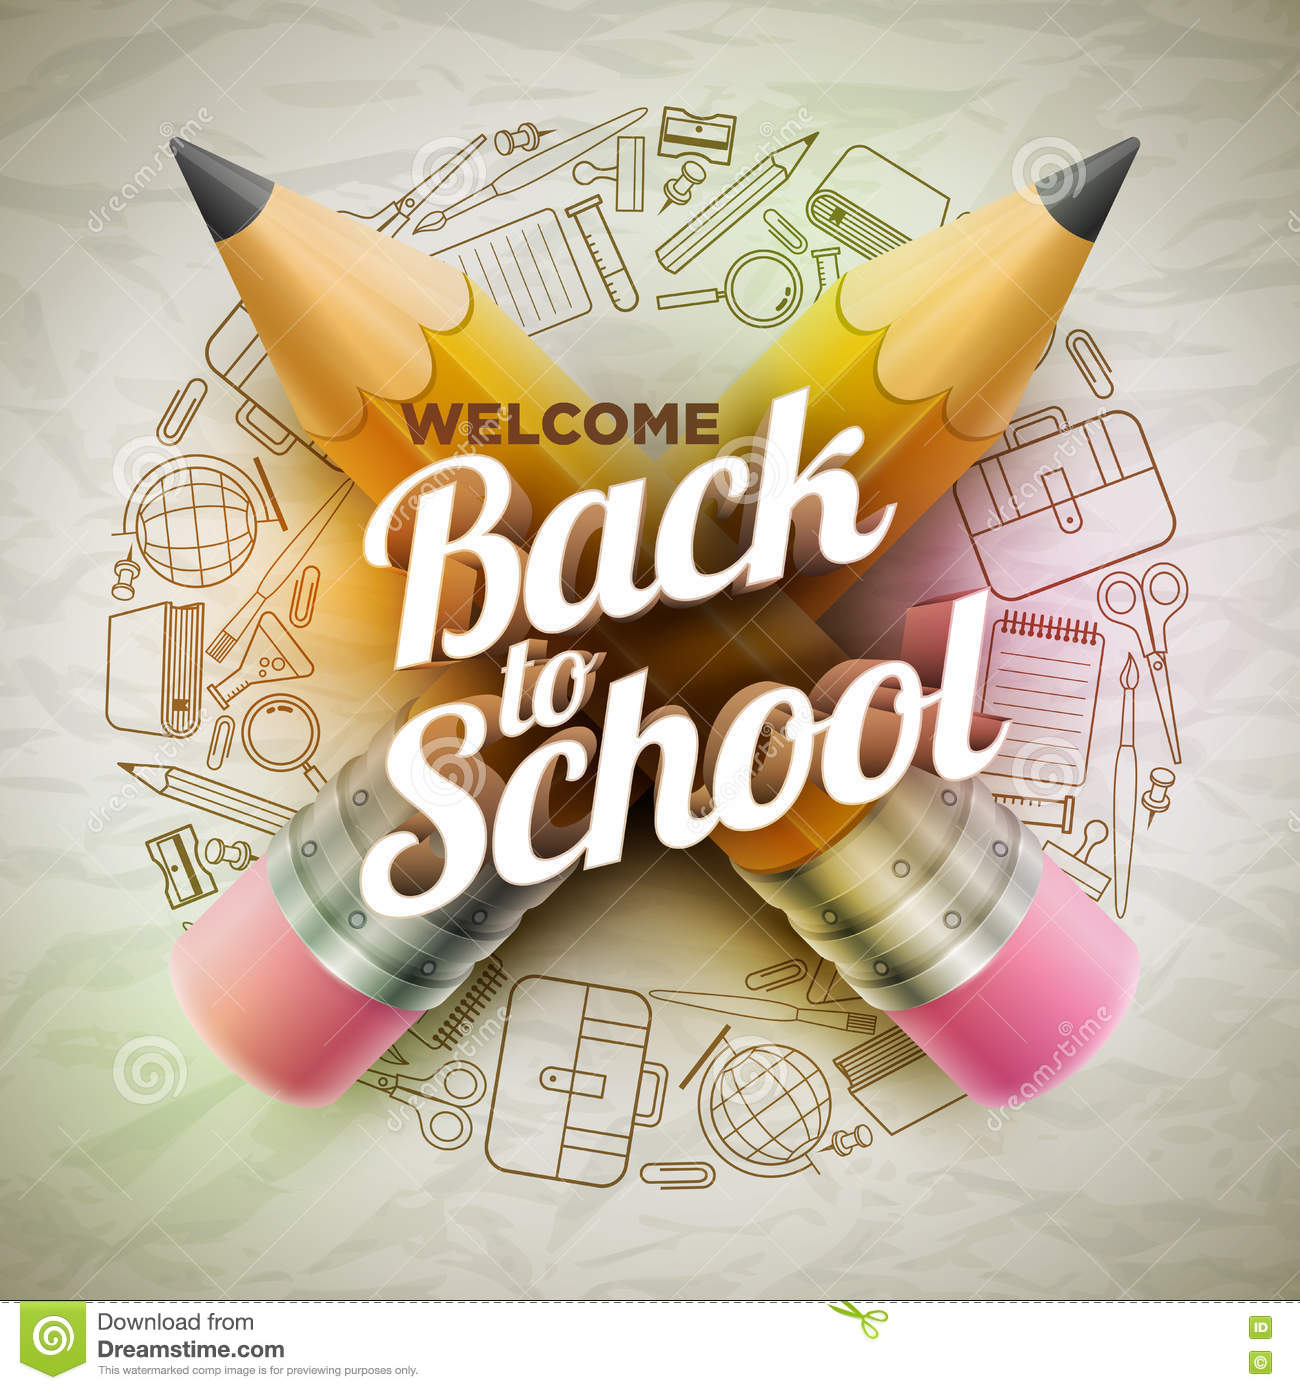 Welcome Back To School Poster Stock Vector - Illustration of ...